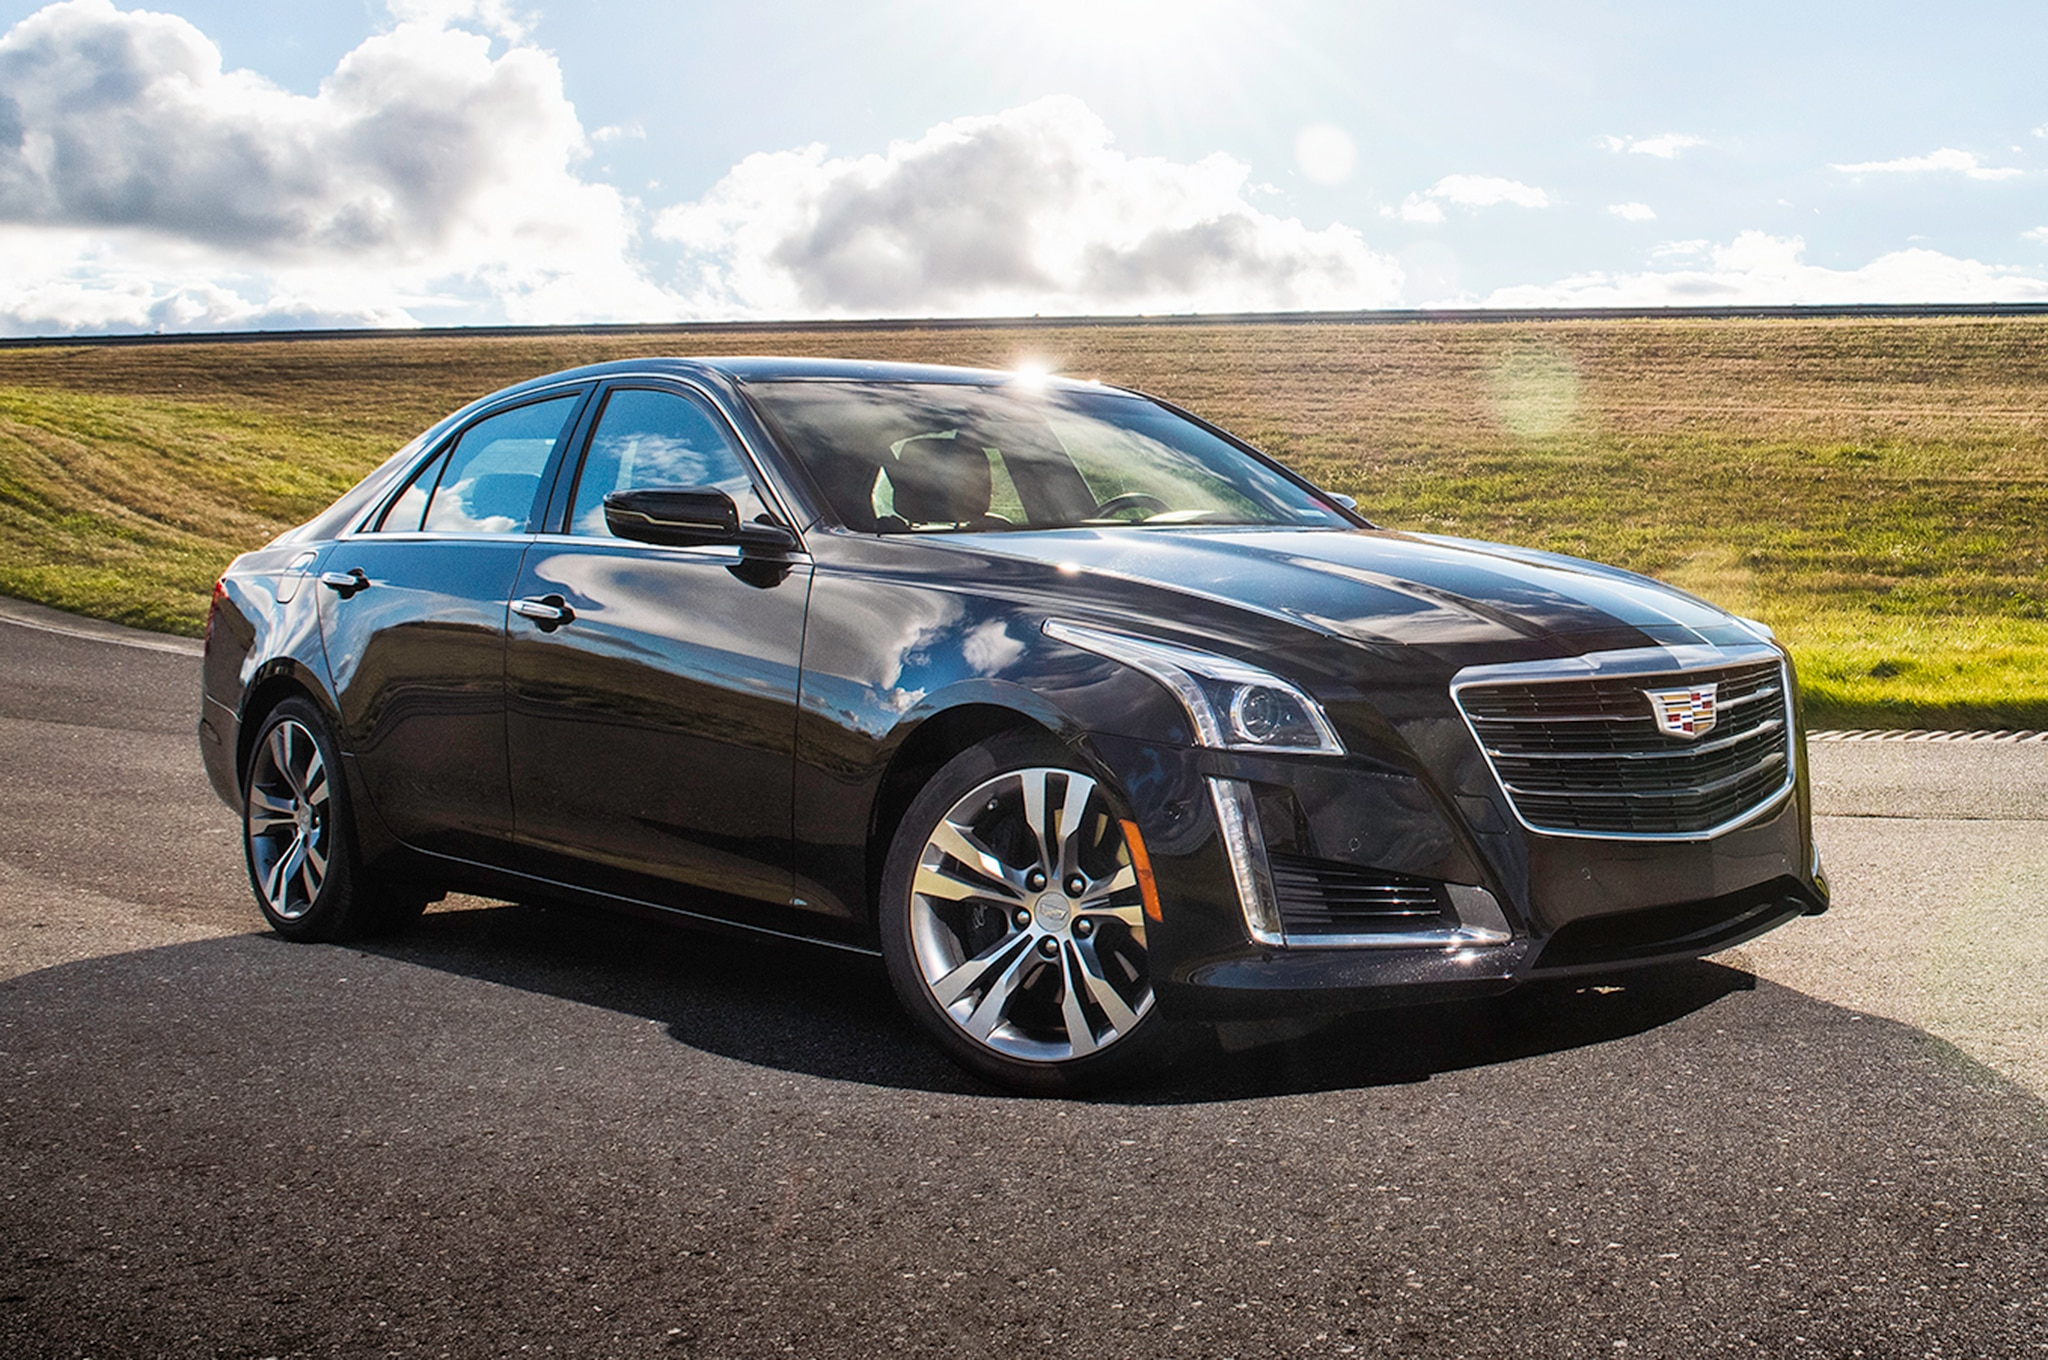 """Cadillac Announces Japan-Only """"White Edition"""" for 2017 ATS, CTS 